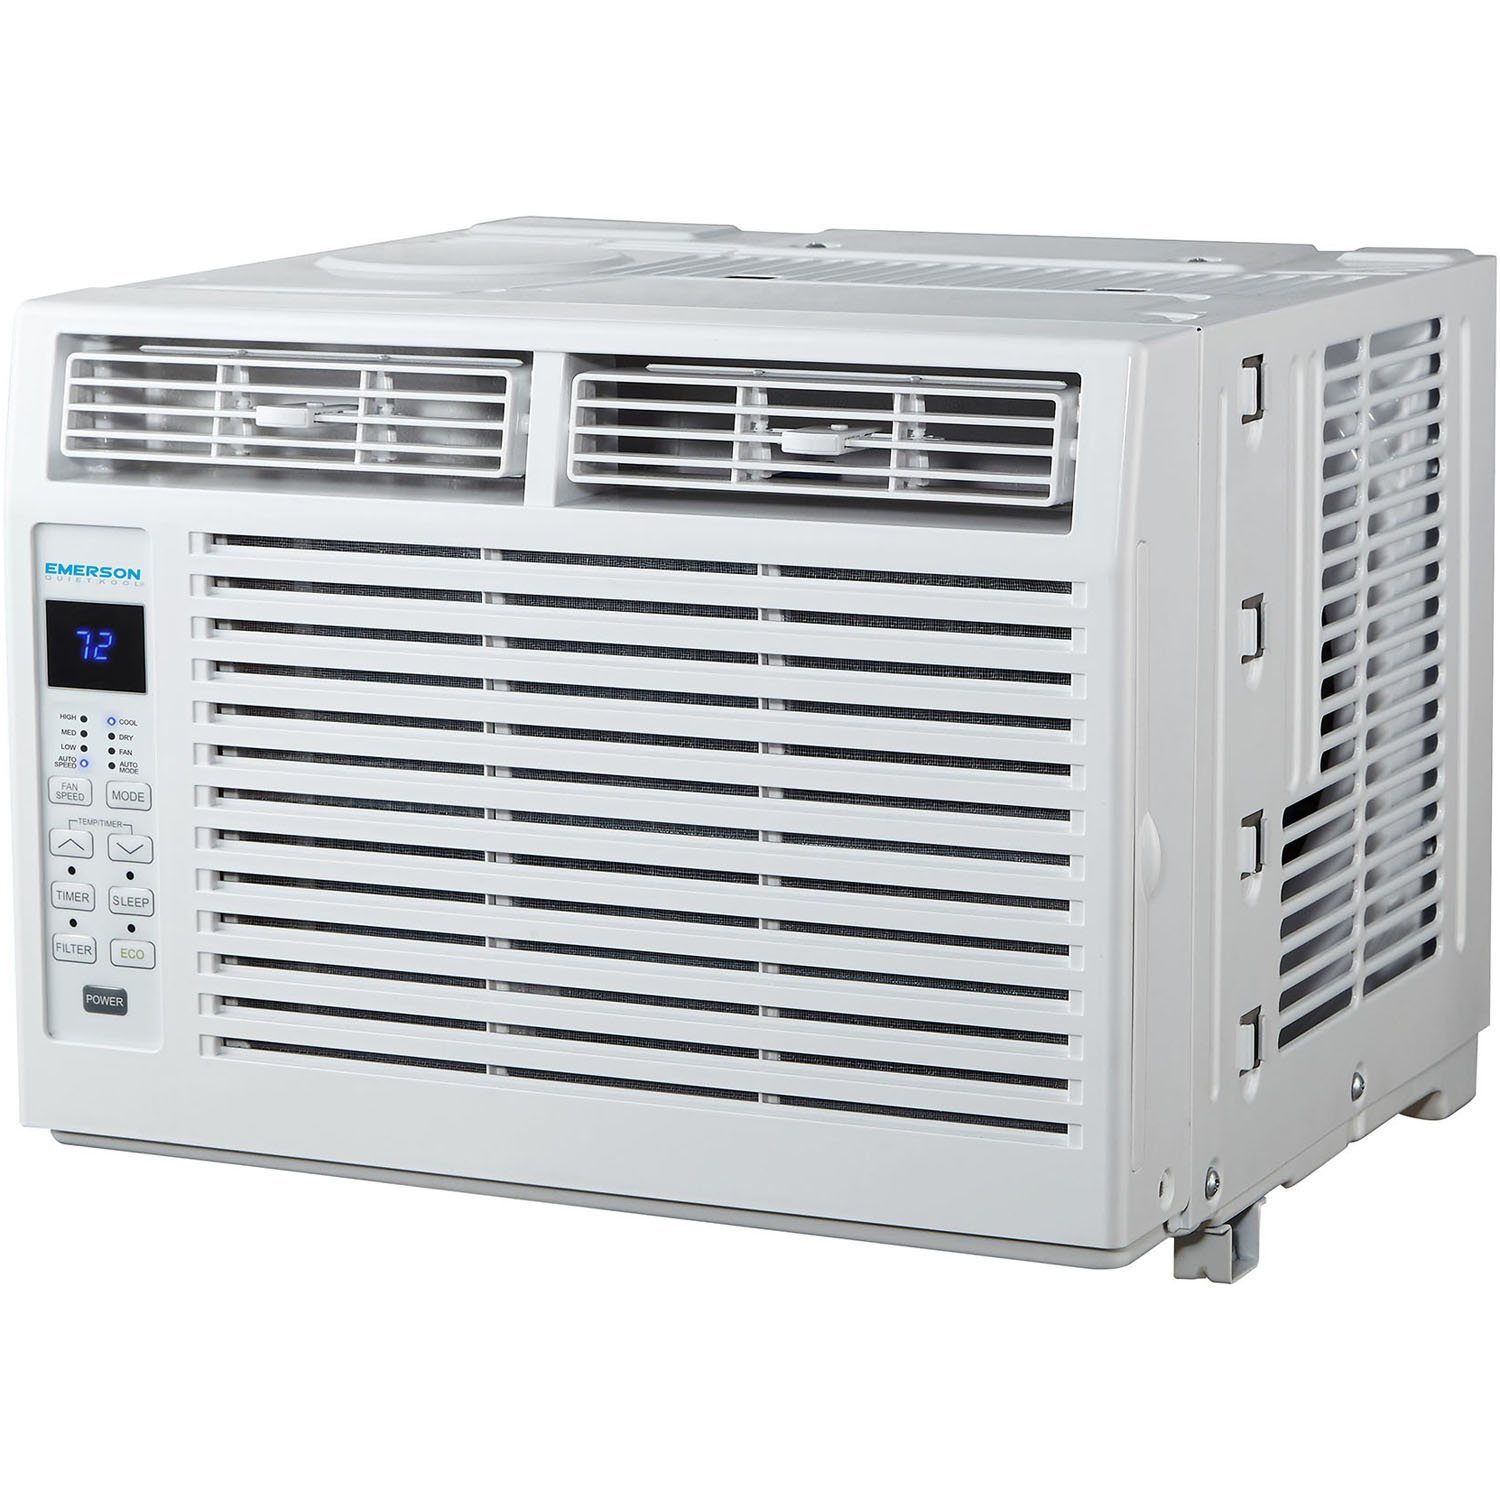 Emerson Quiet Kool EARC5RD1 5000 BTU 115V, White Window Air Conditioner with Remote Control